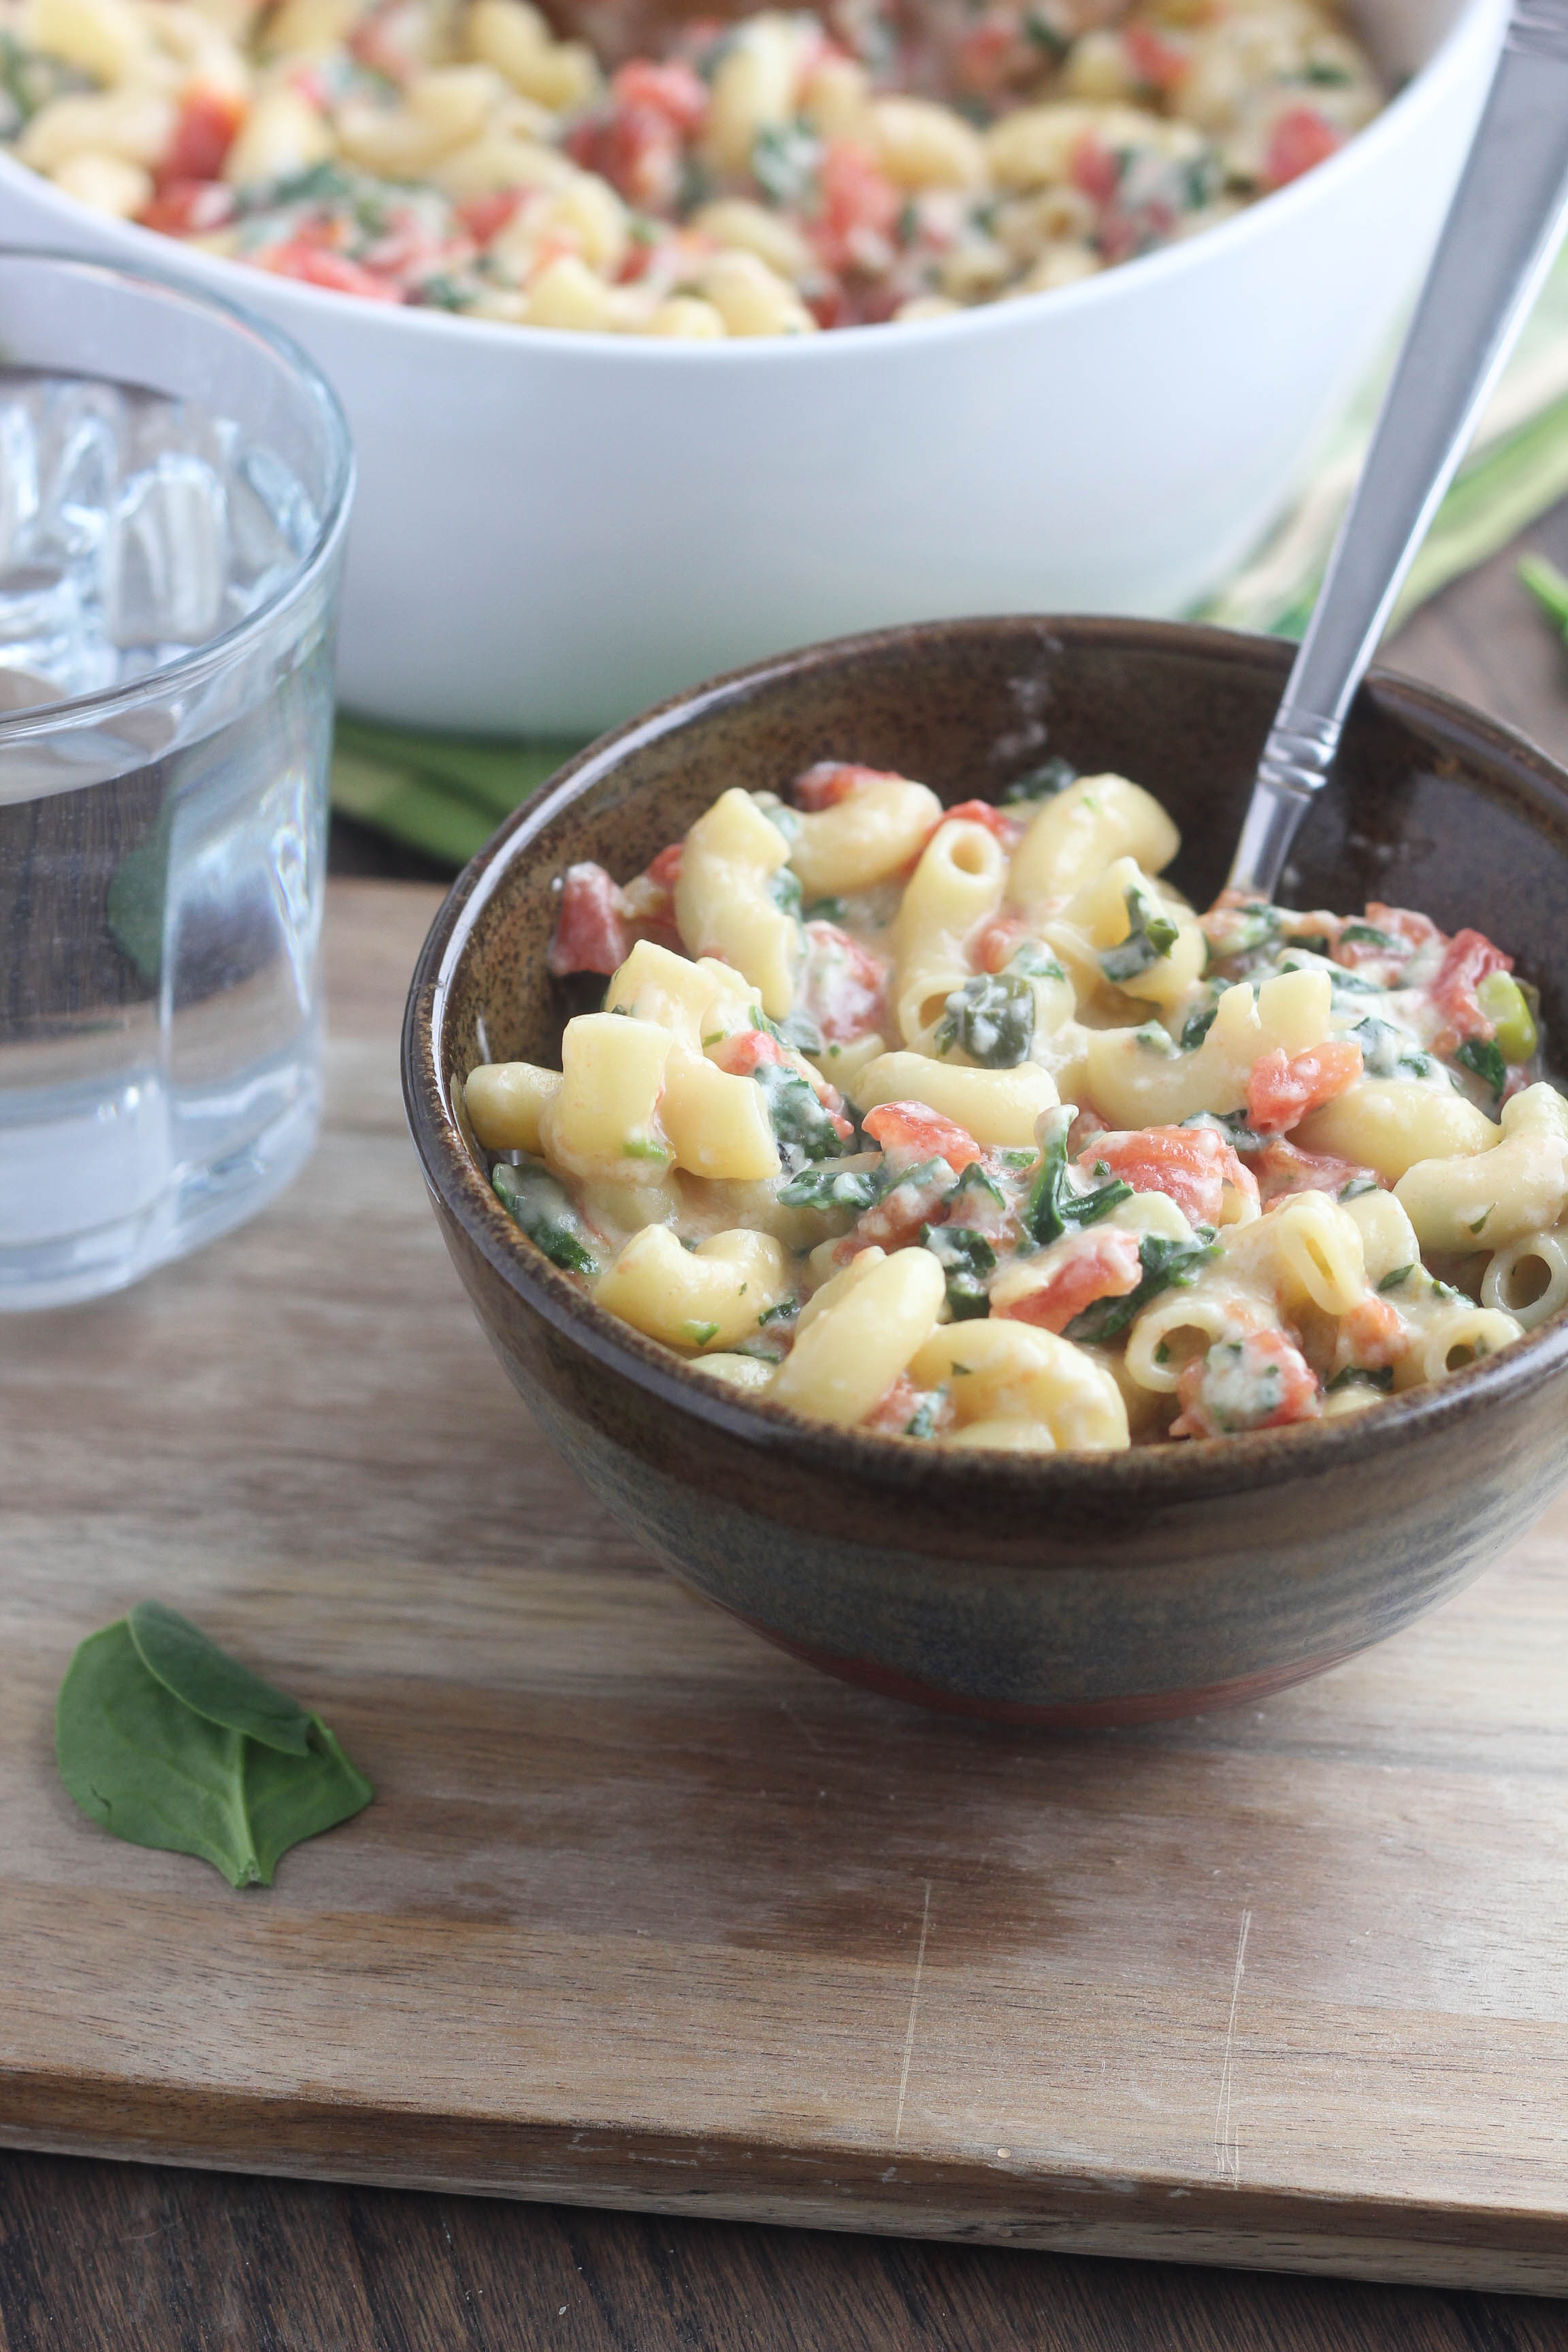 Spinach Queso Macaroni and Cheese